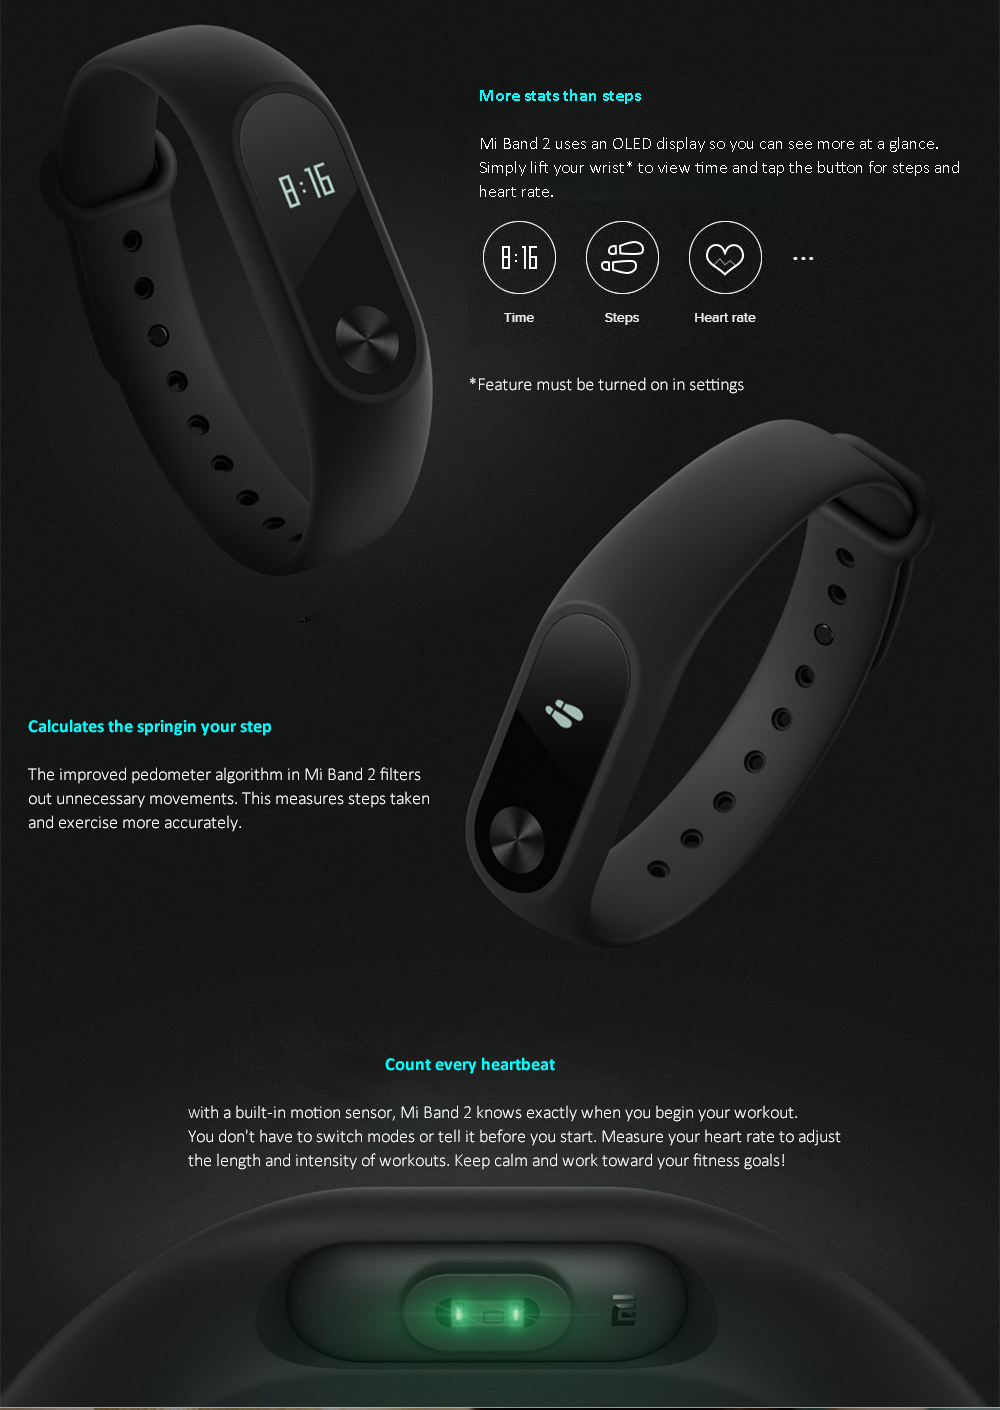 Xiaomi Mi Band 2 Miband 2 Smart Bracelet Wristband Band Fitness Tracker Bracelet Smartband Heart rate Monitor 100% Original (3)